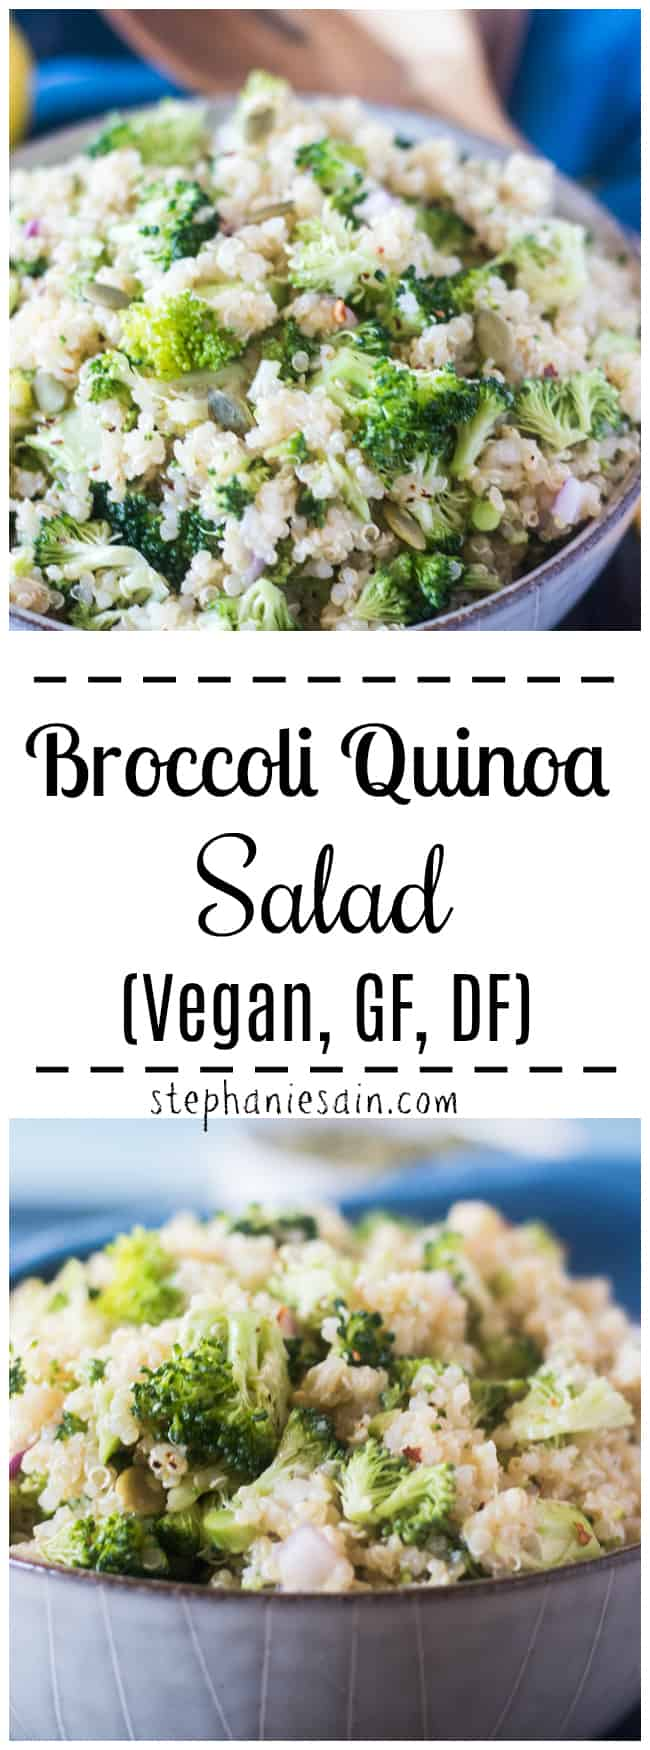 This Broccoli Quinoa Salad is super easy to make and comes together in under 20 minutes. A tasty, healthy recipe that's perfect to make ahead since the flavors intensify more over time. Great for quick lunches and dinners. Or potlucks and gatherings. Vegan, GF, Dairy Free.